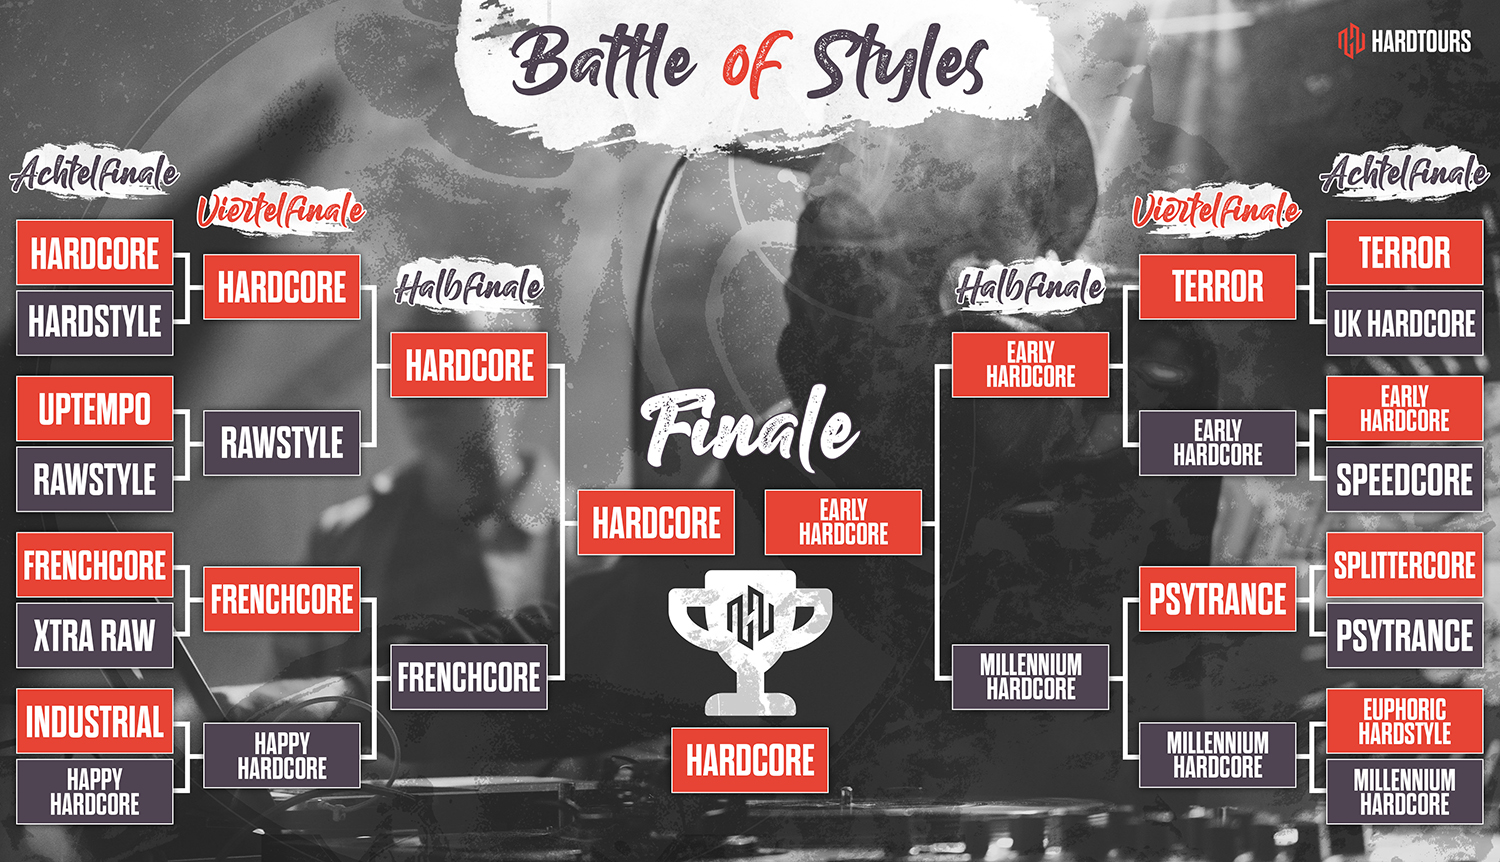 Battle of Styles